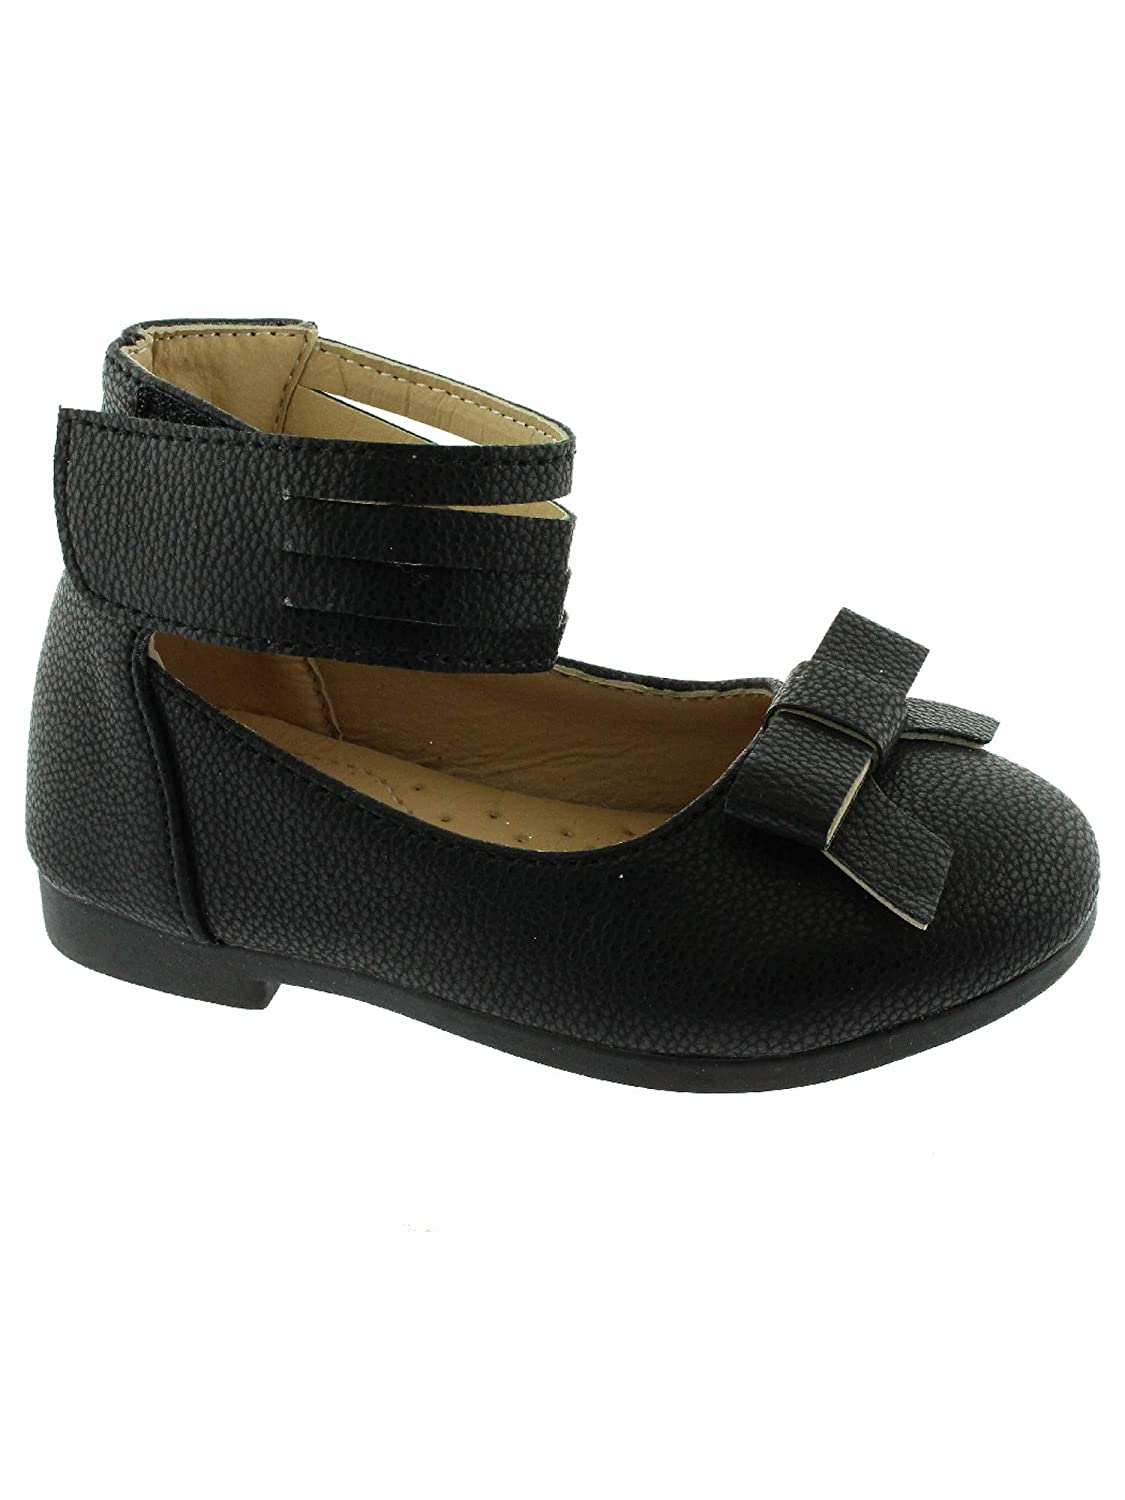 Kate Girls Black Ankle Strap Bow Mary Jane Shoes 11-4 Kids